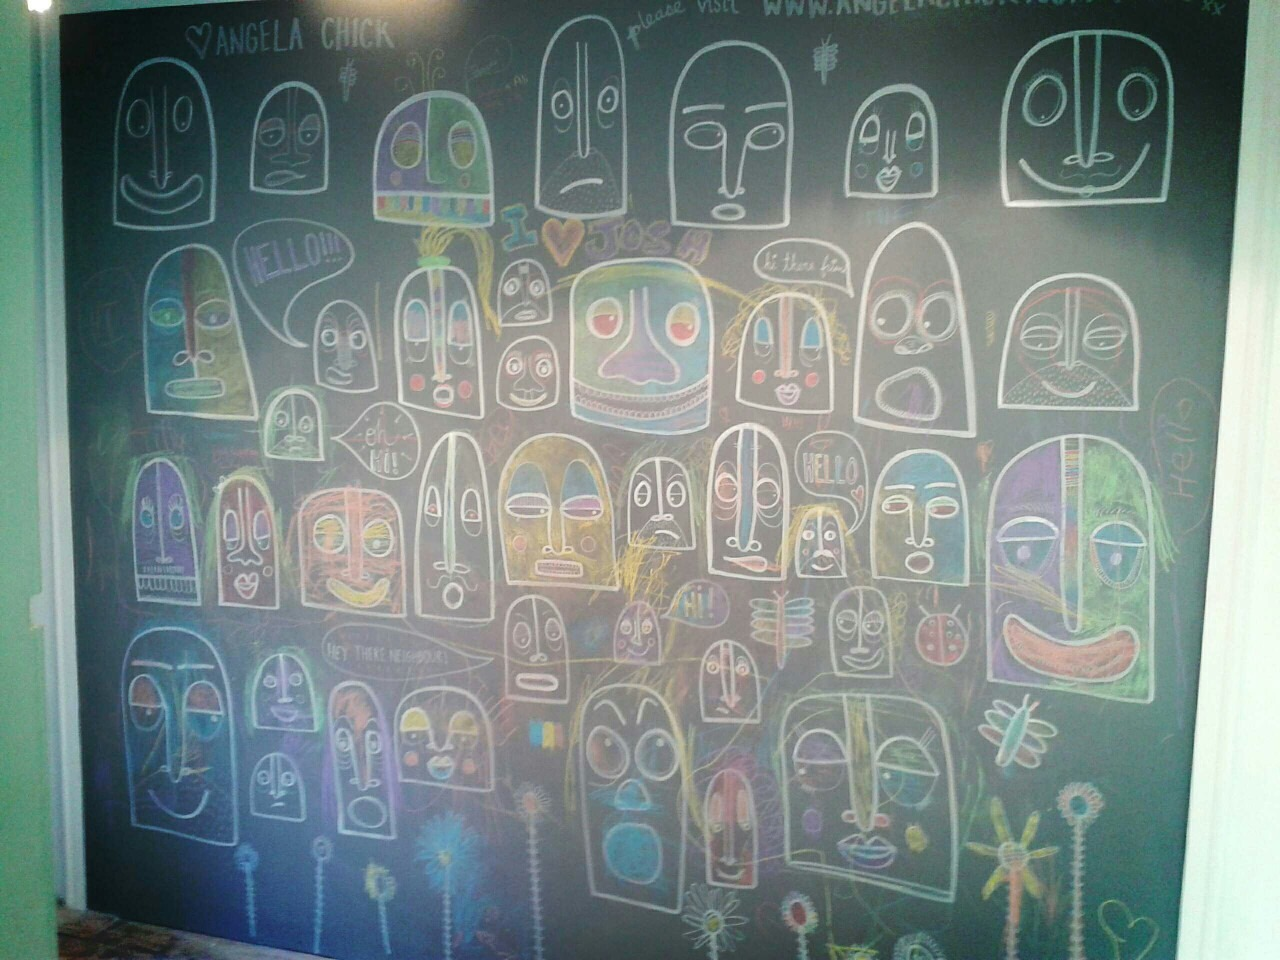 Our drawing wall: made with ♡ by Angela Chick ;)